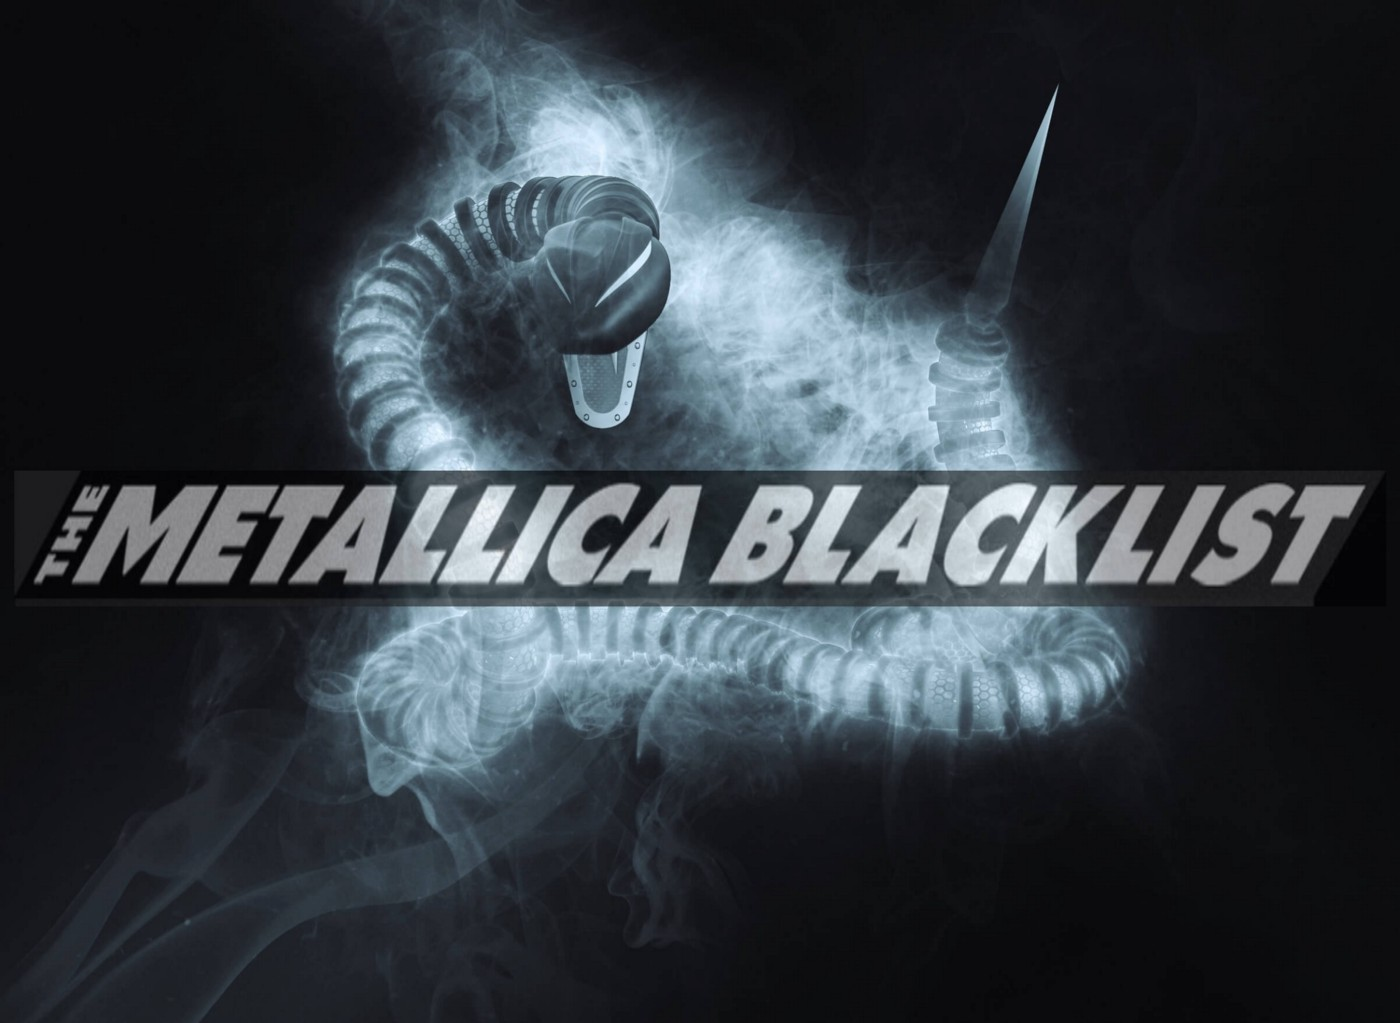 Metallica's The Black List lettering over a heavy metal snake black background to celebrate the Black Album 30th Anniversary.